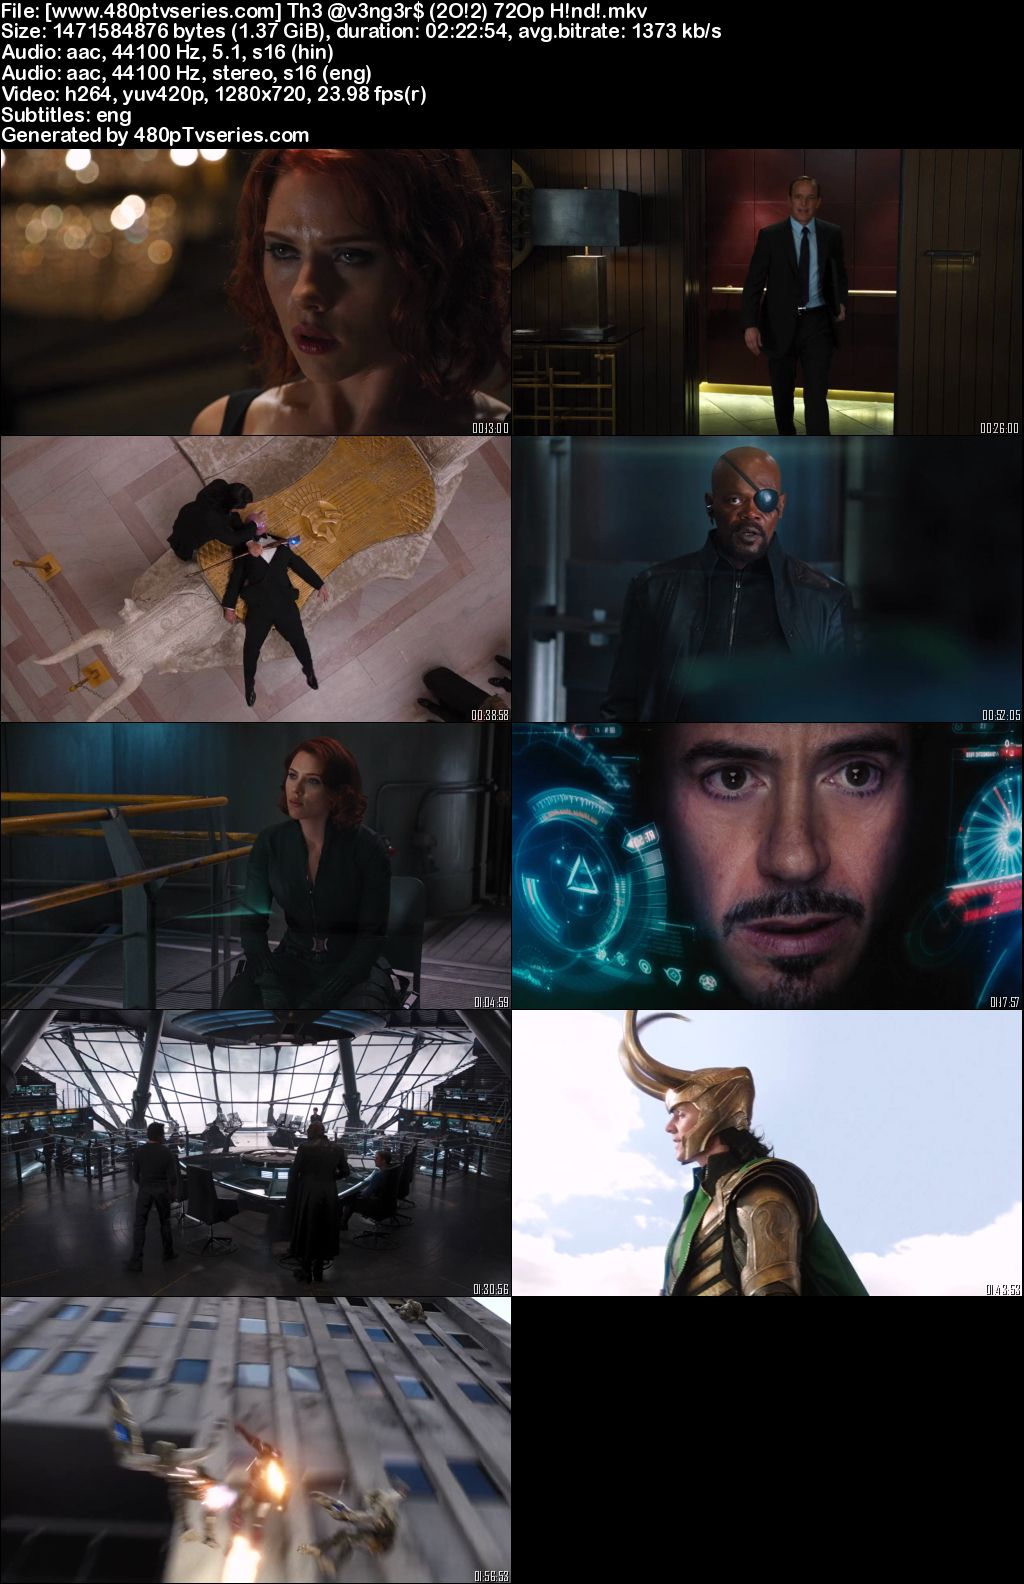 Download The Avengers (2012) Full Hindi Dual Audio Movie Download 720p Bluray Free Watch Online Full Movie Download Worldfree4u 9xmovies